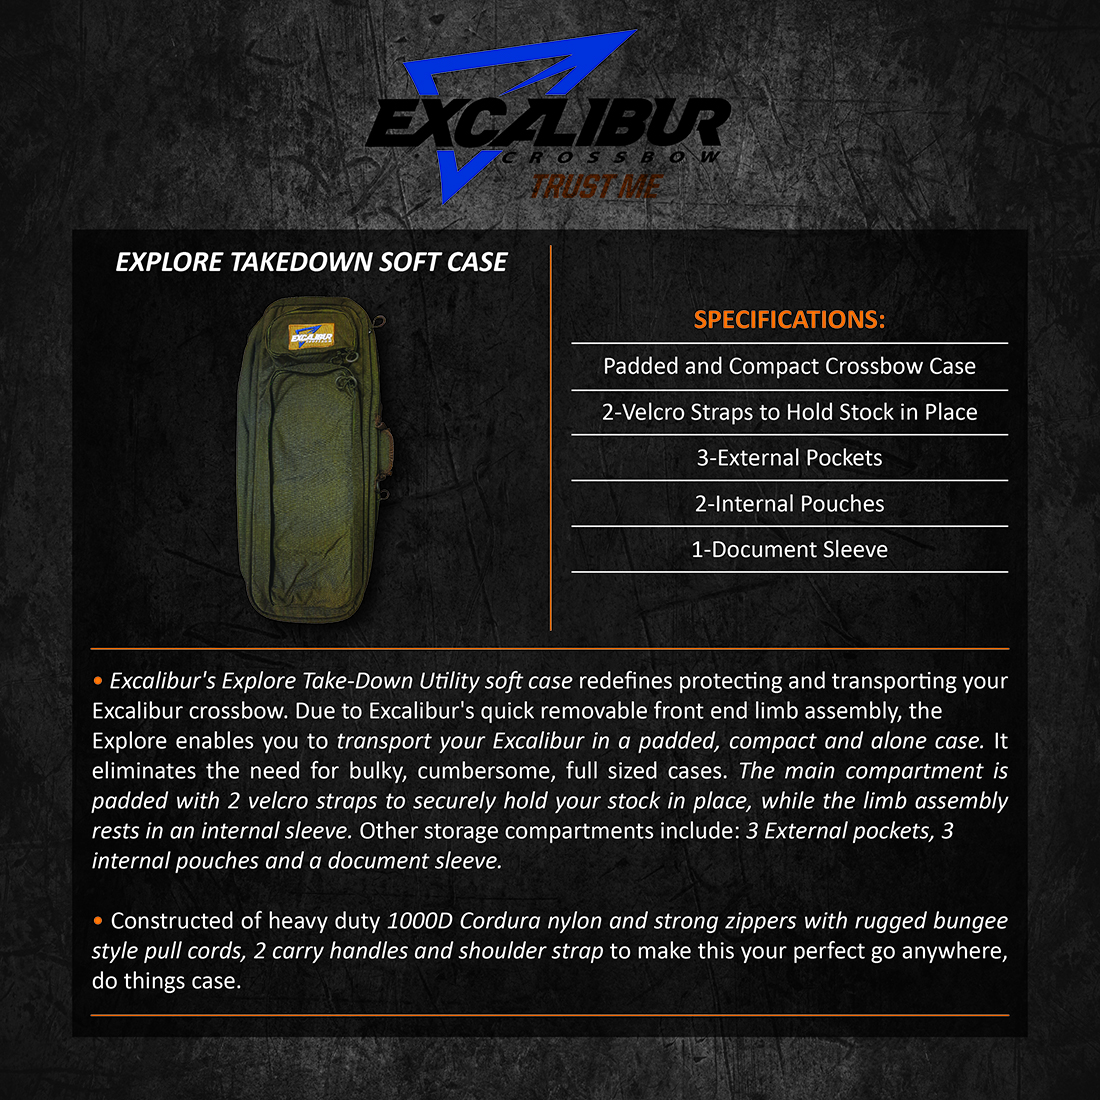 Excalibur_Explore_Takedown_Soft_Case_Product_Description